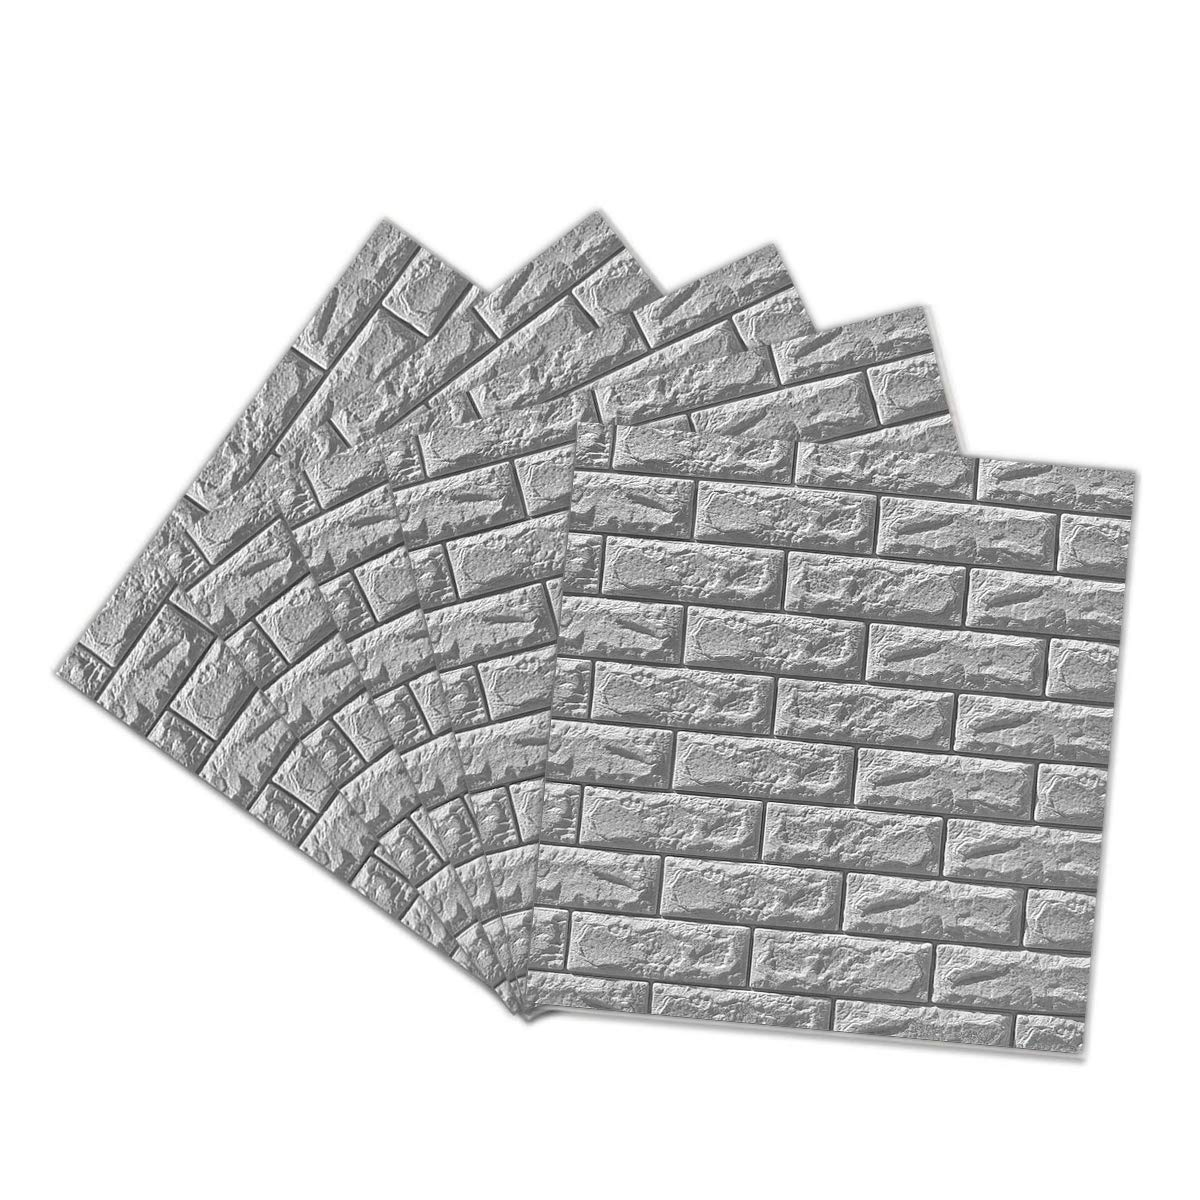 5-Pack 3D Brick Wall Panels Stickers PE Foam Self Adhesive Wallpaper Removable Wall Decoration,27.5''30.30.27''/pcs (Gray)